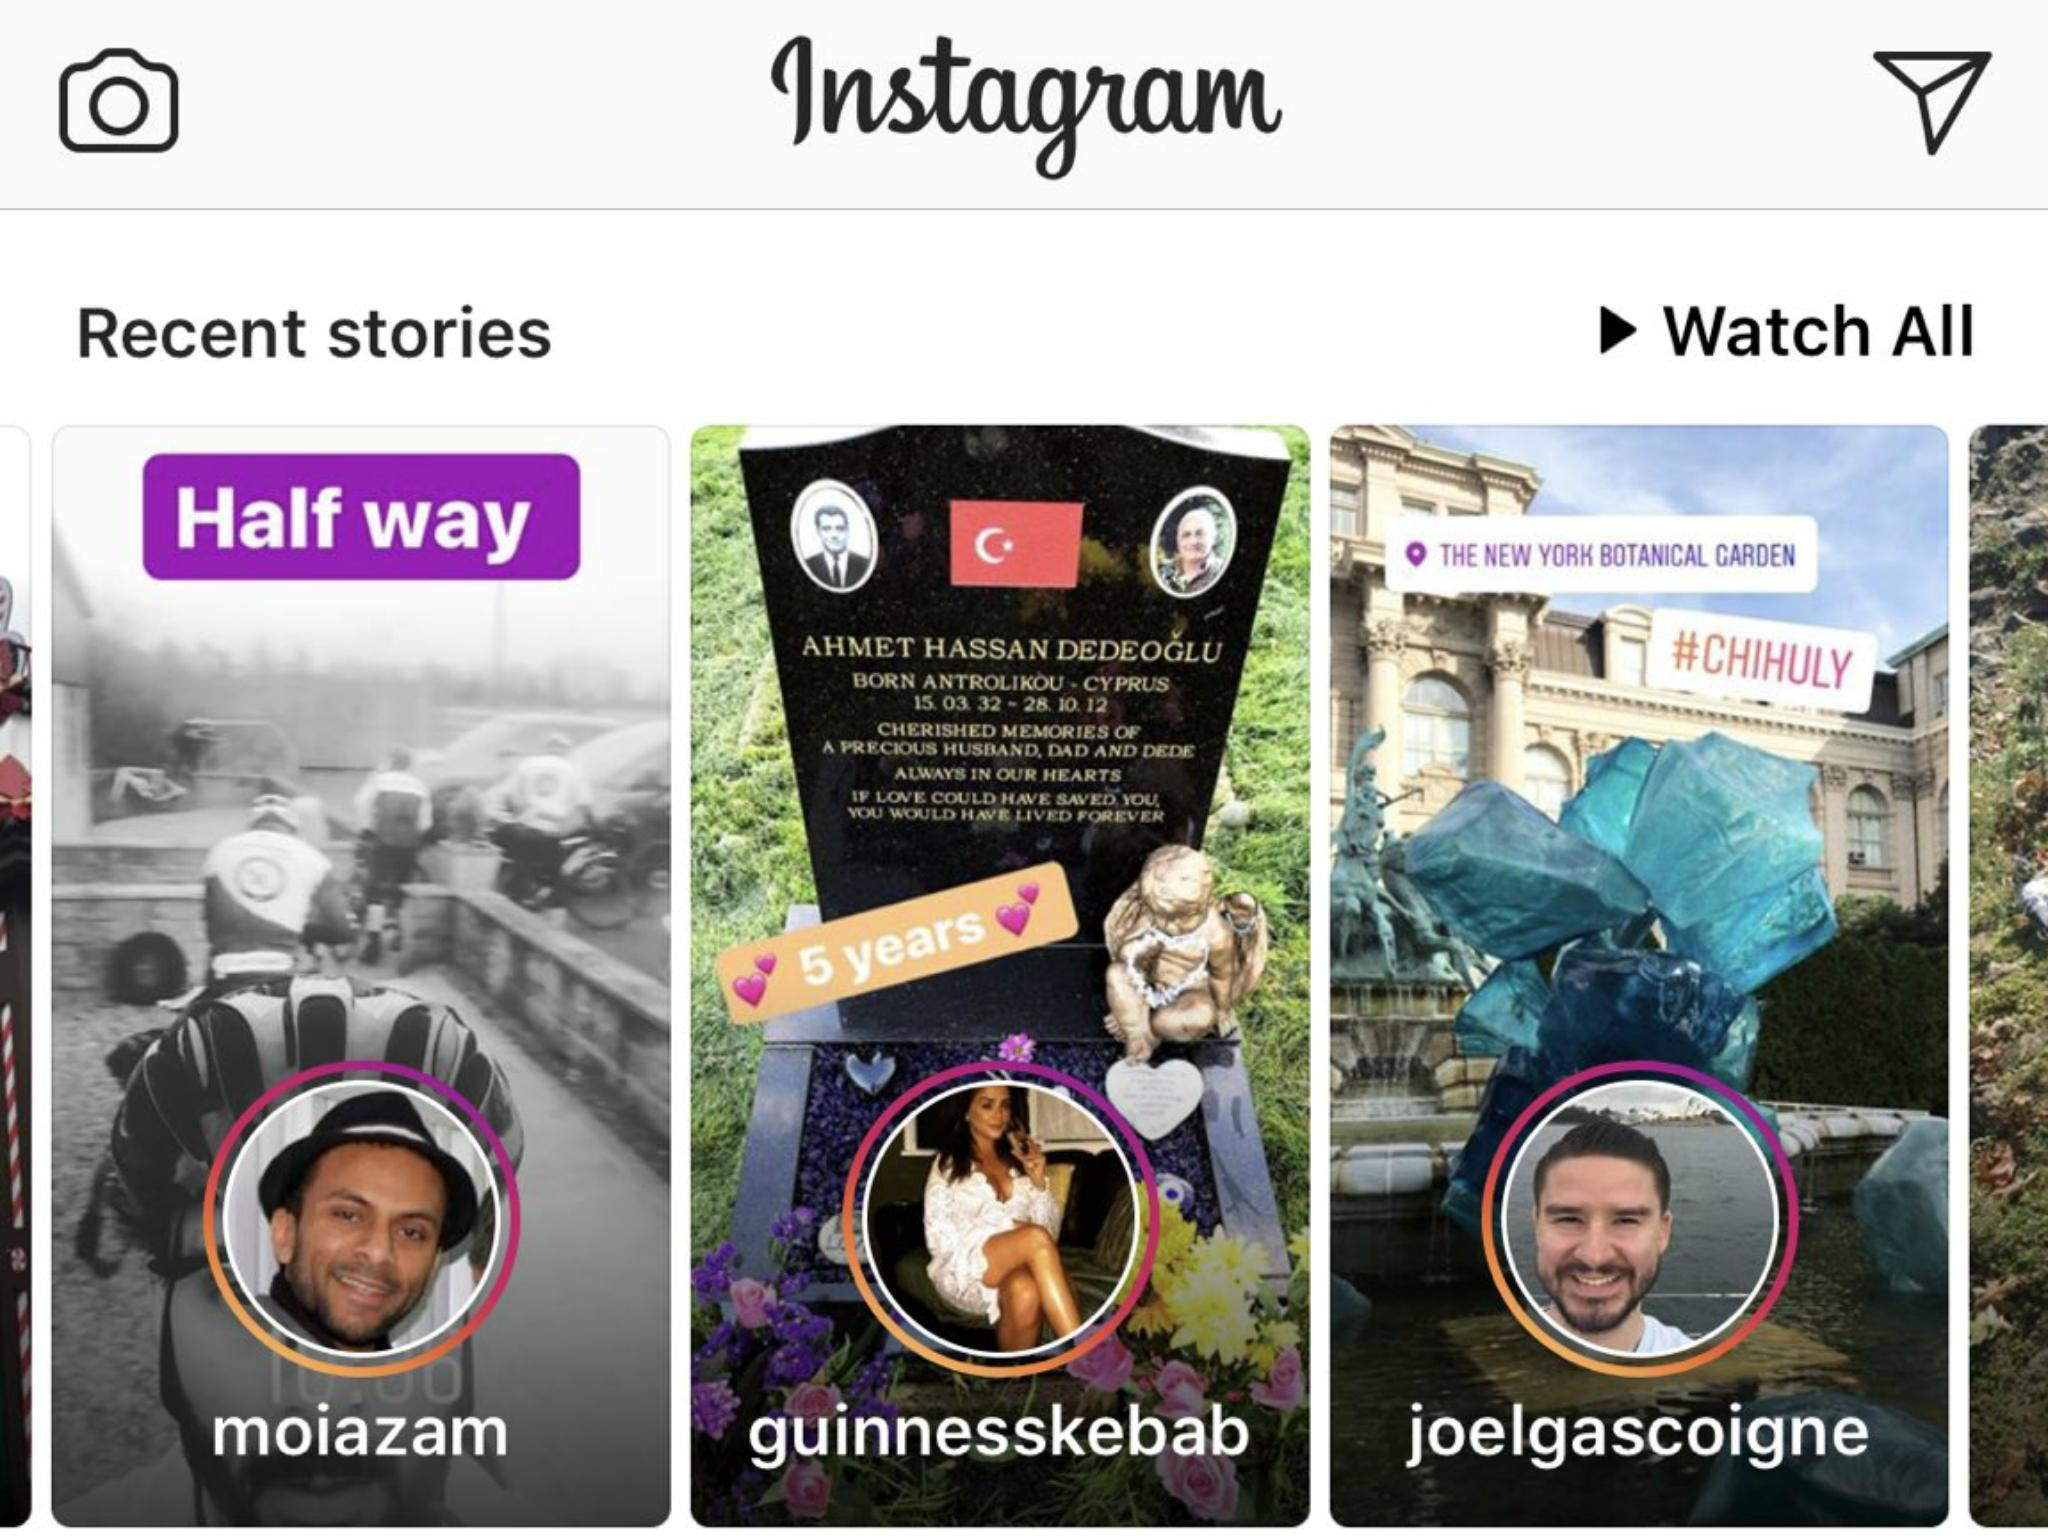 Instagram Stories will get in your way more after redesign | The